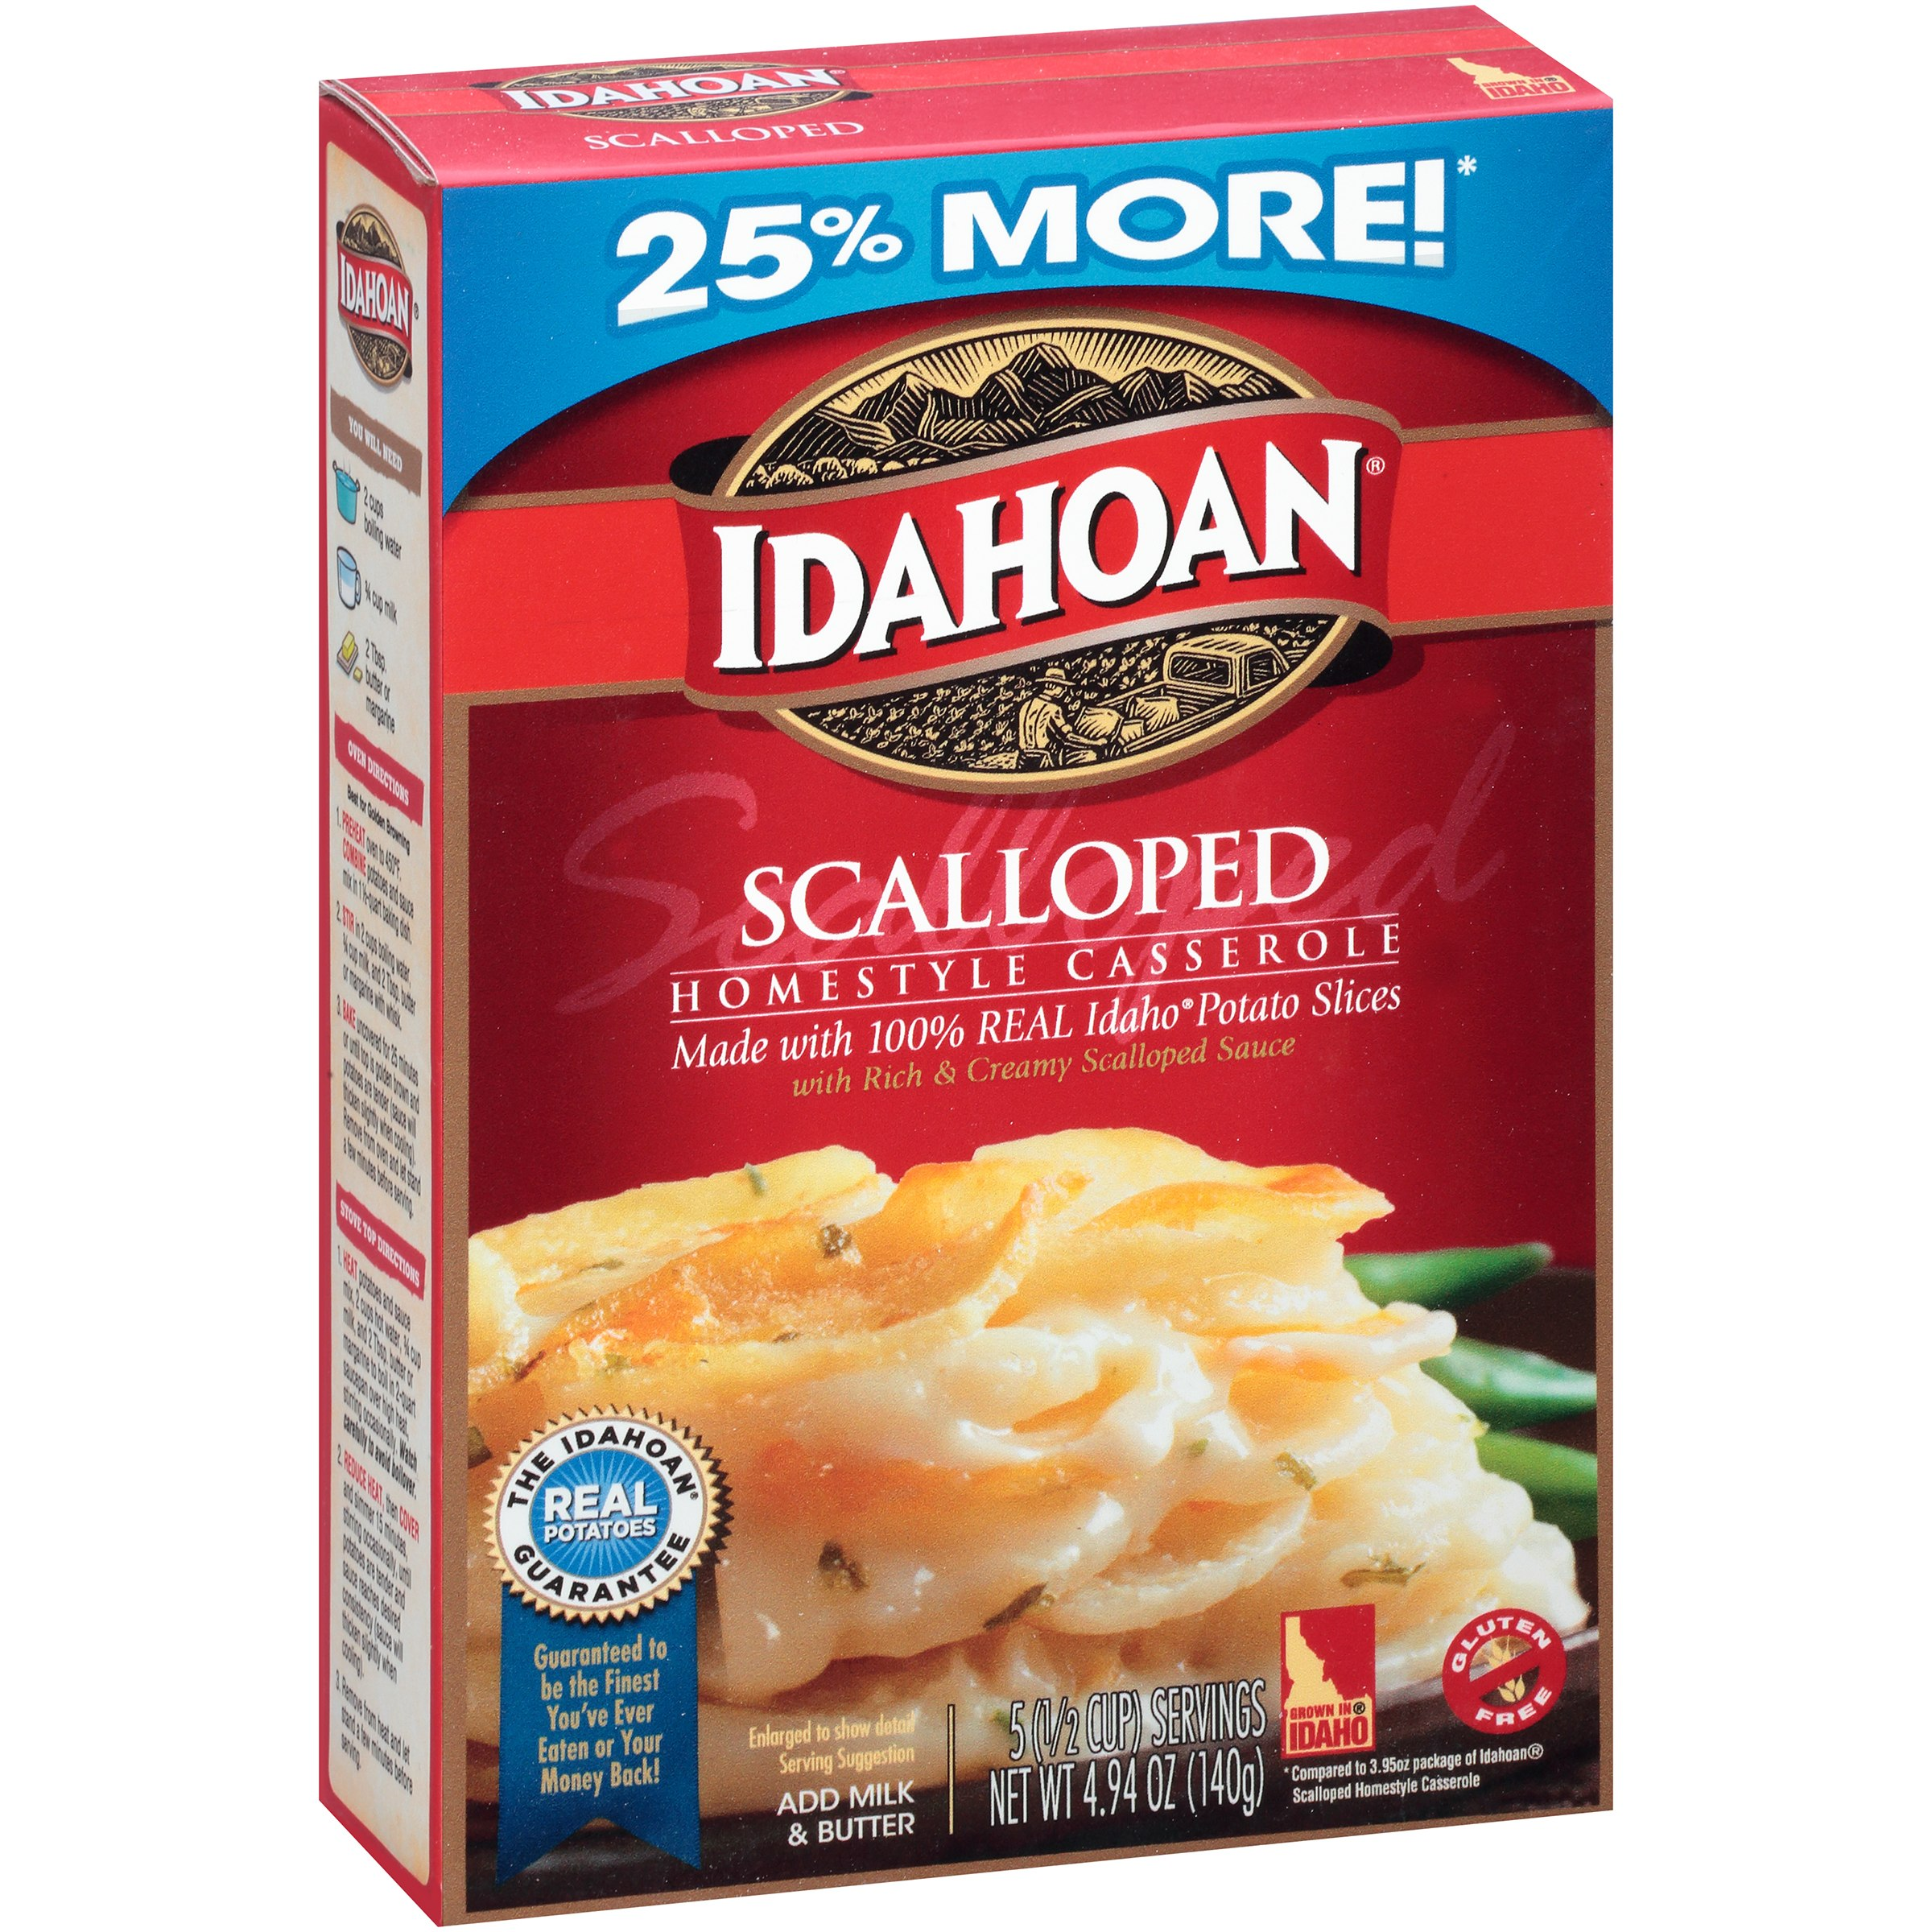 Idahoan Scalloped Homestyle Casserole, 4.94 oz by Idahoan Foods, LLC